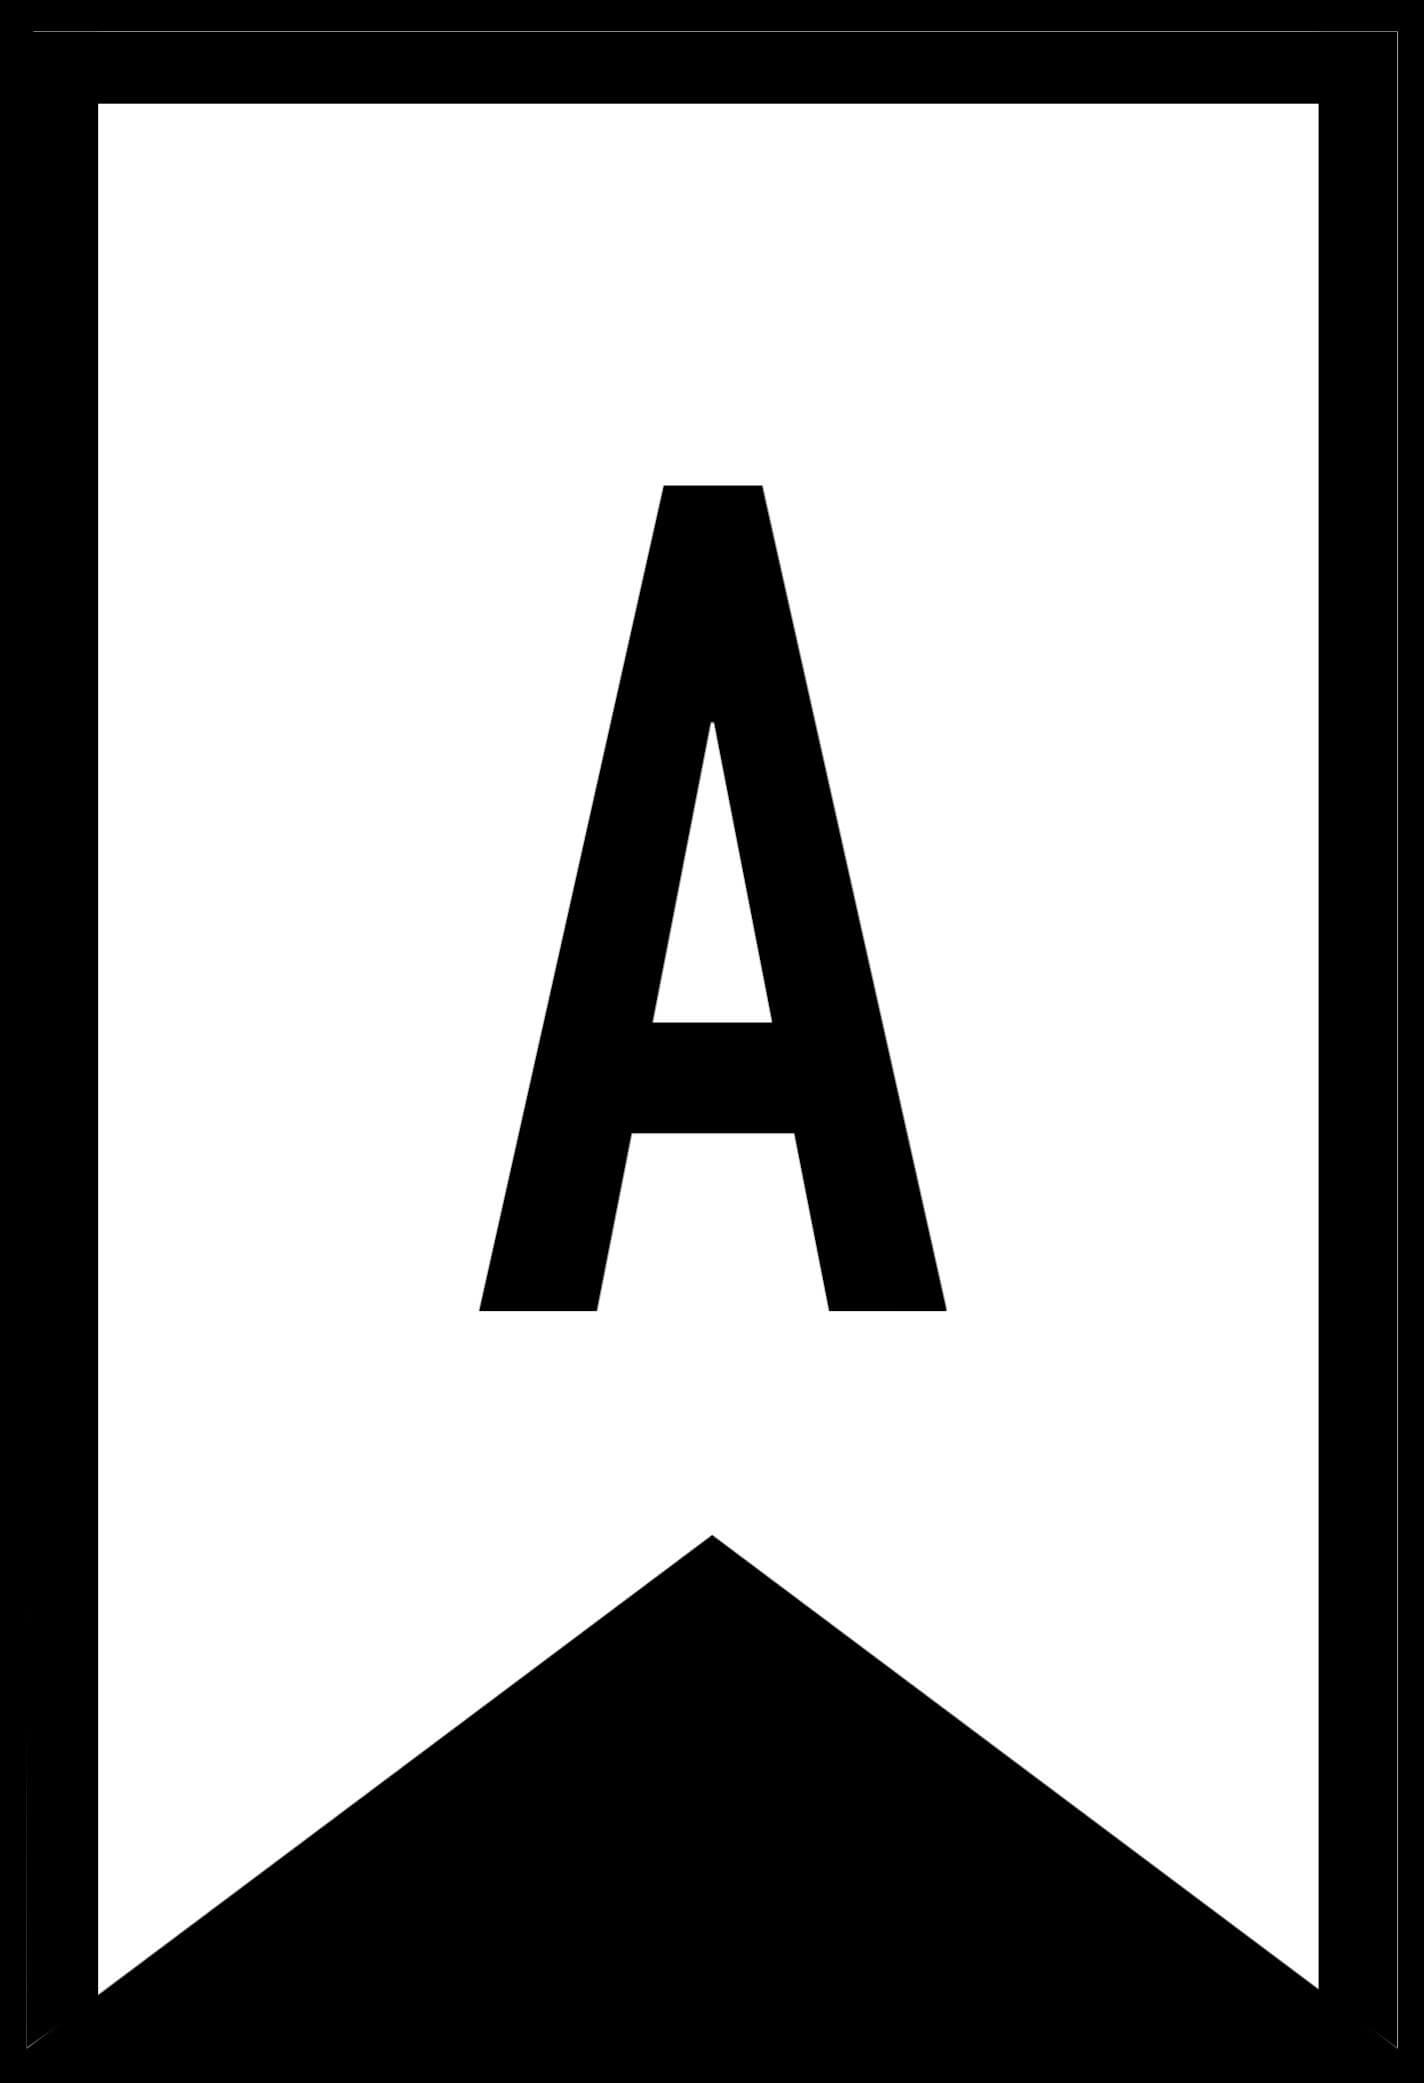 Free Printable Letters For Banners Entire Alphabet Letter for Printable Letter Templates For Banners